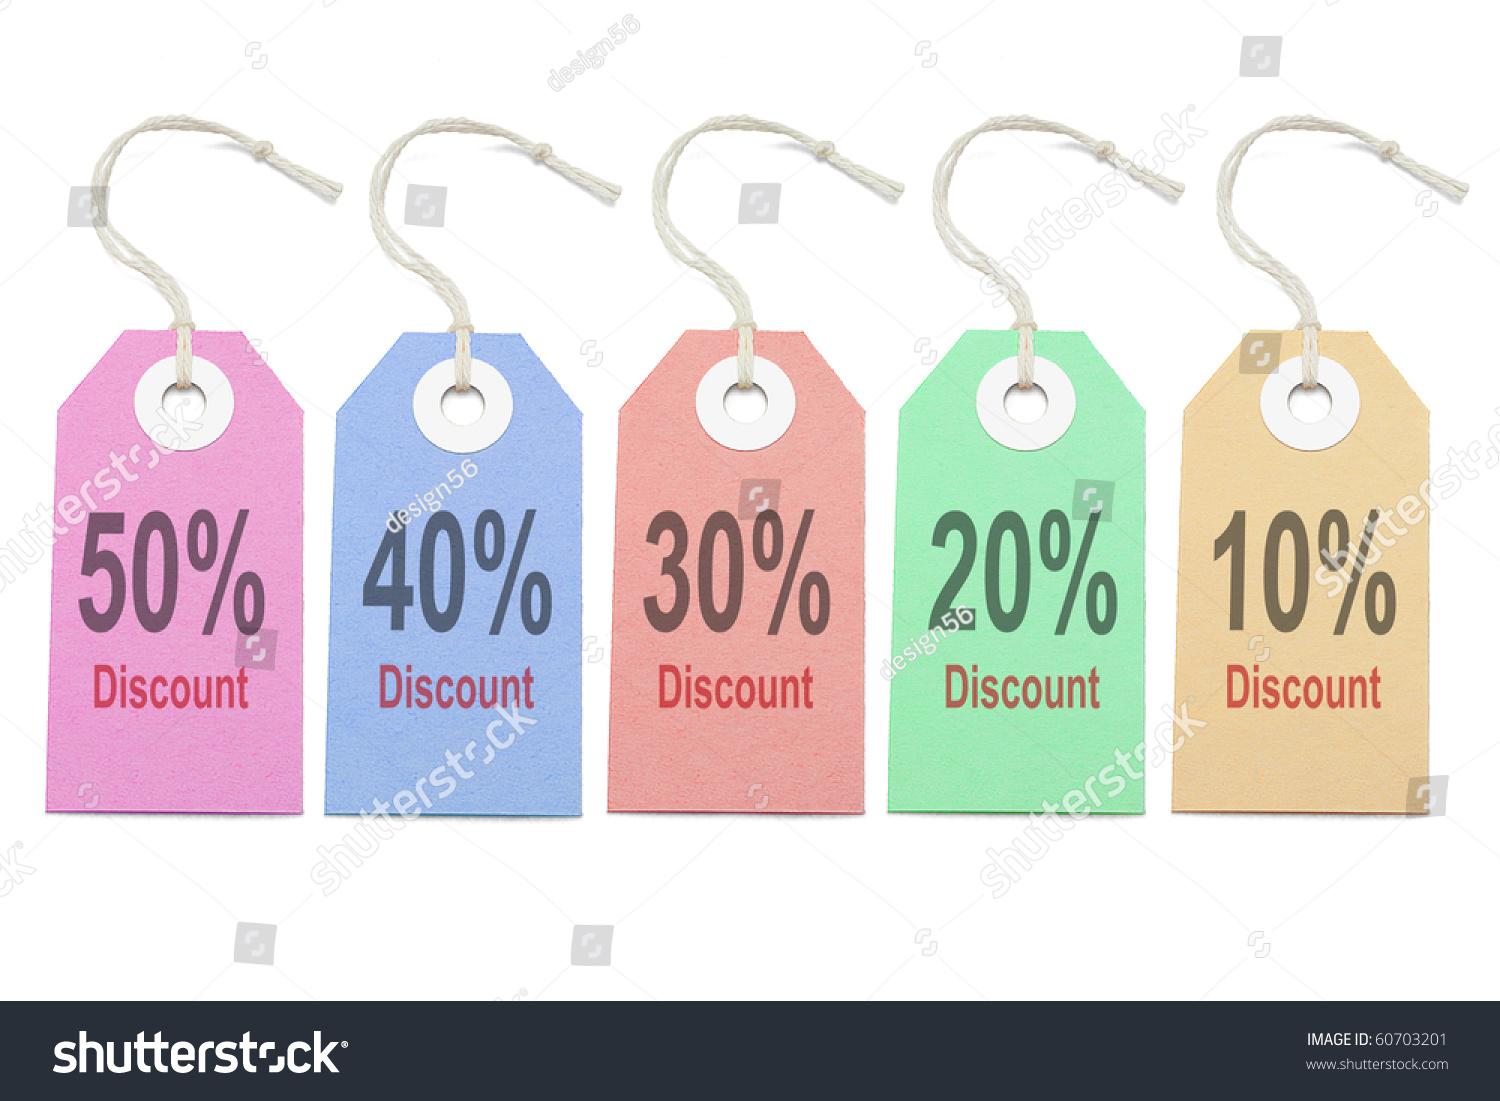 Coupon website white label